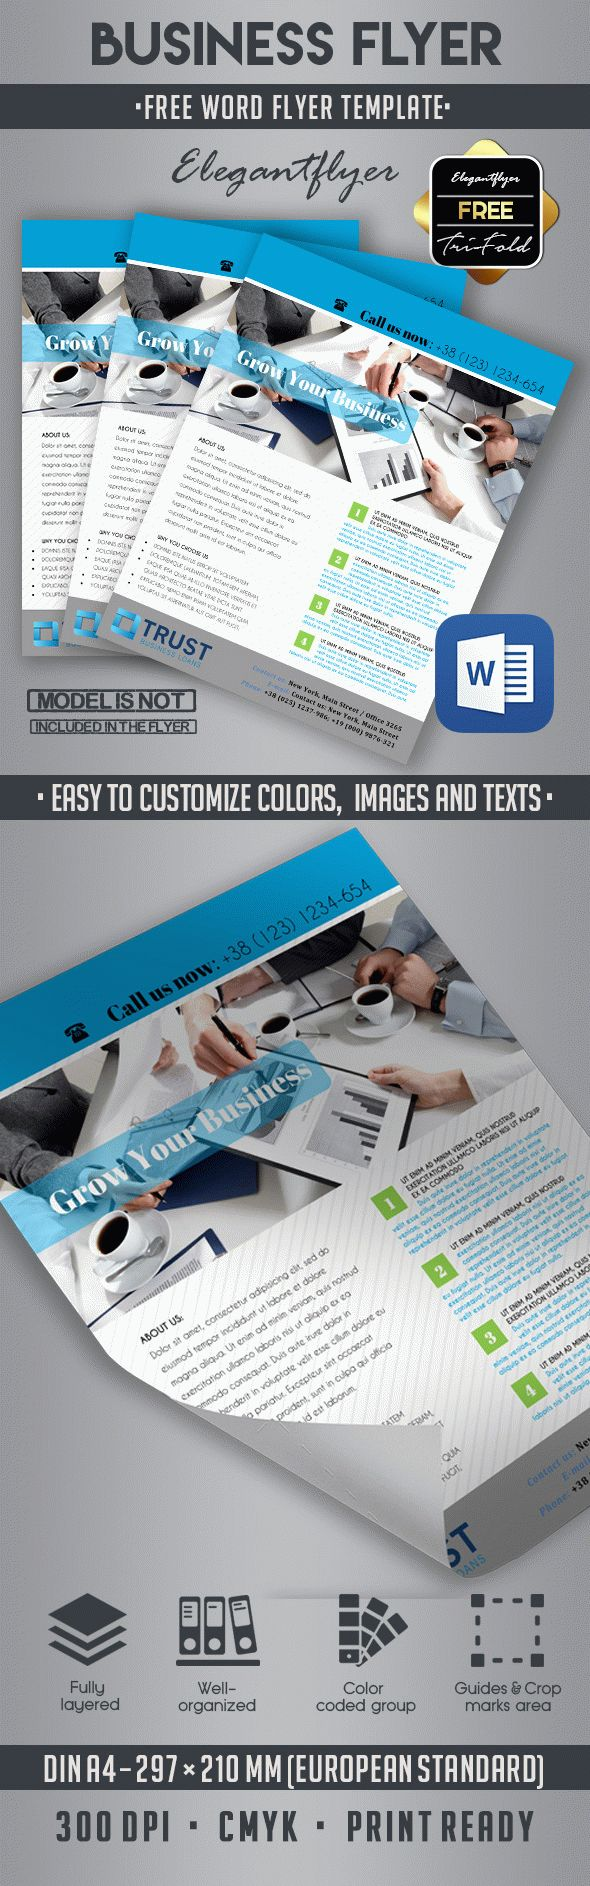 10 best business flyer templates in word by elegantflyer 10 best business flyer templates in word accmission Image collections